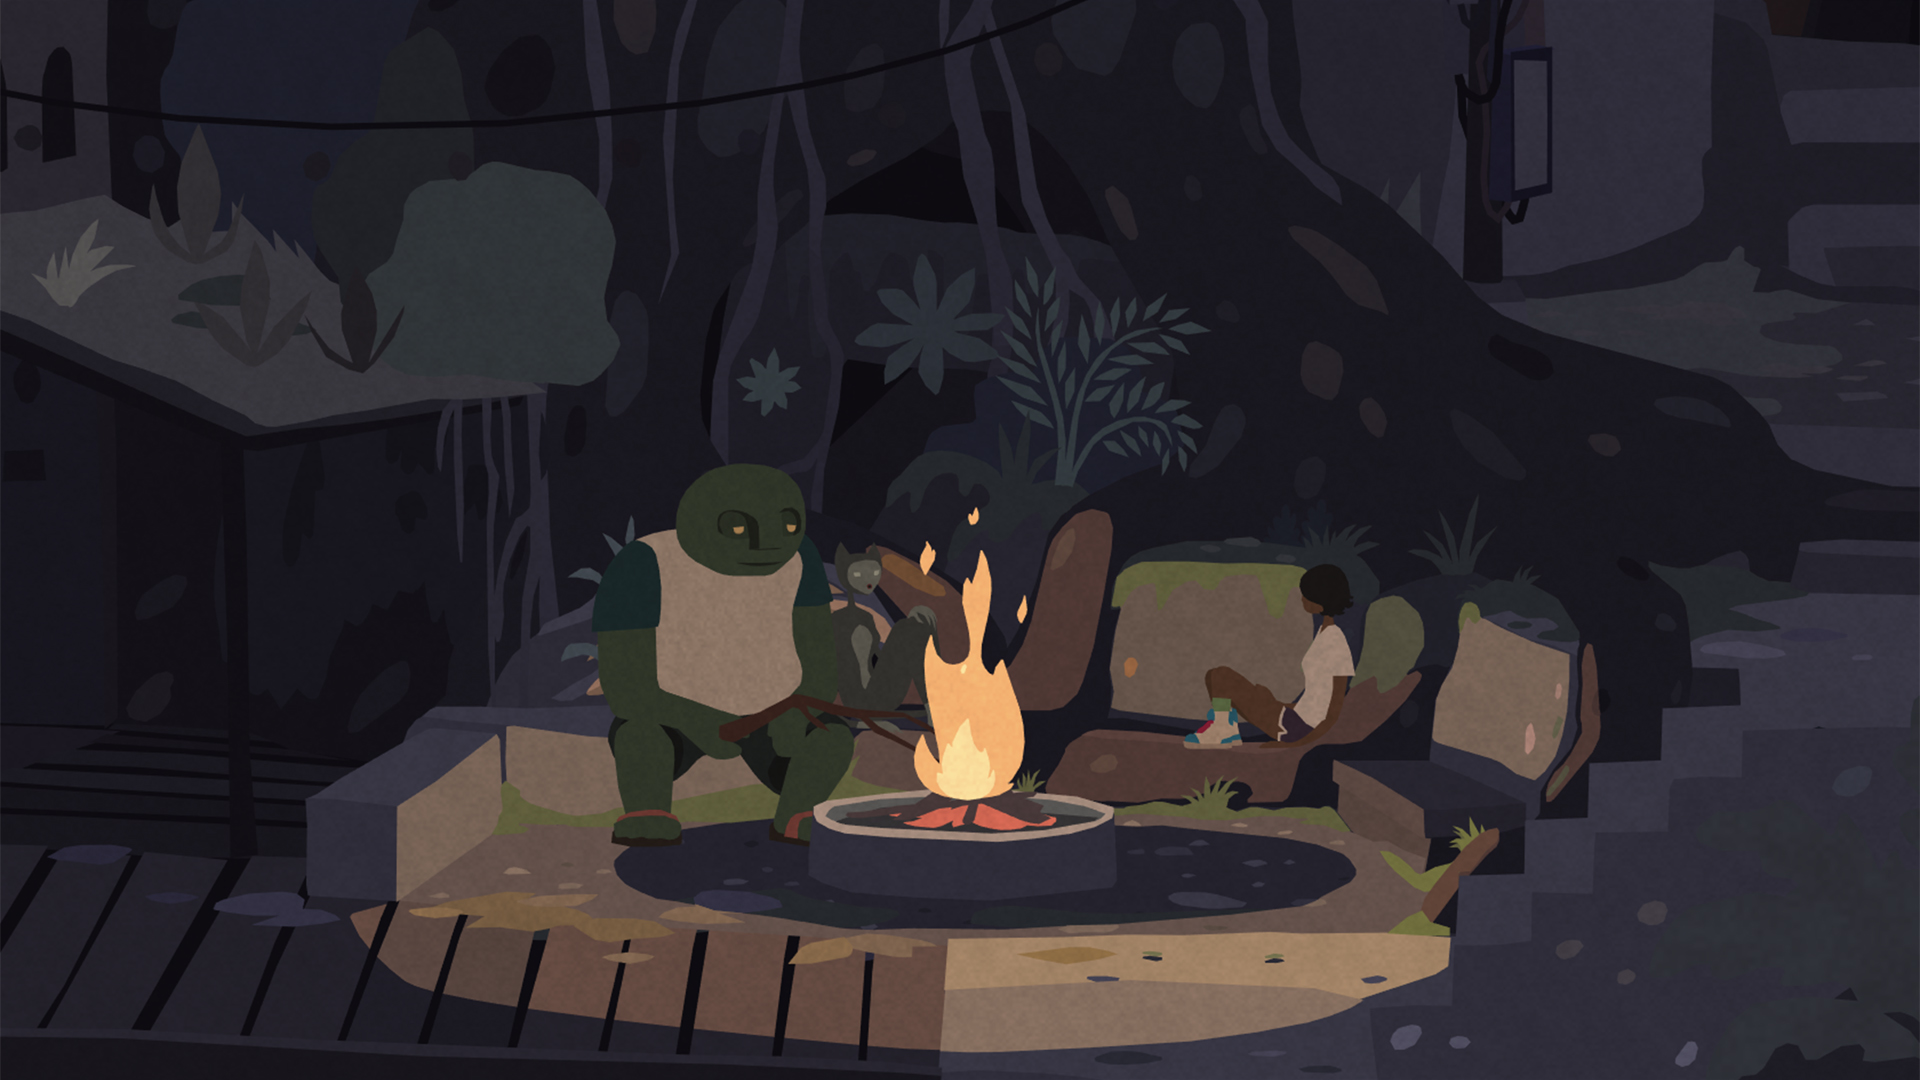 The game's lead character and a friendly mutant relax by the fire